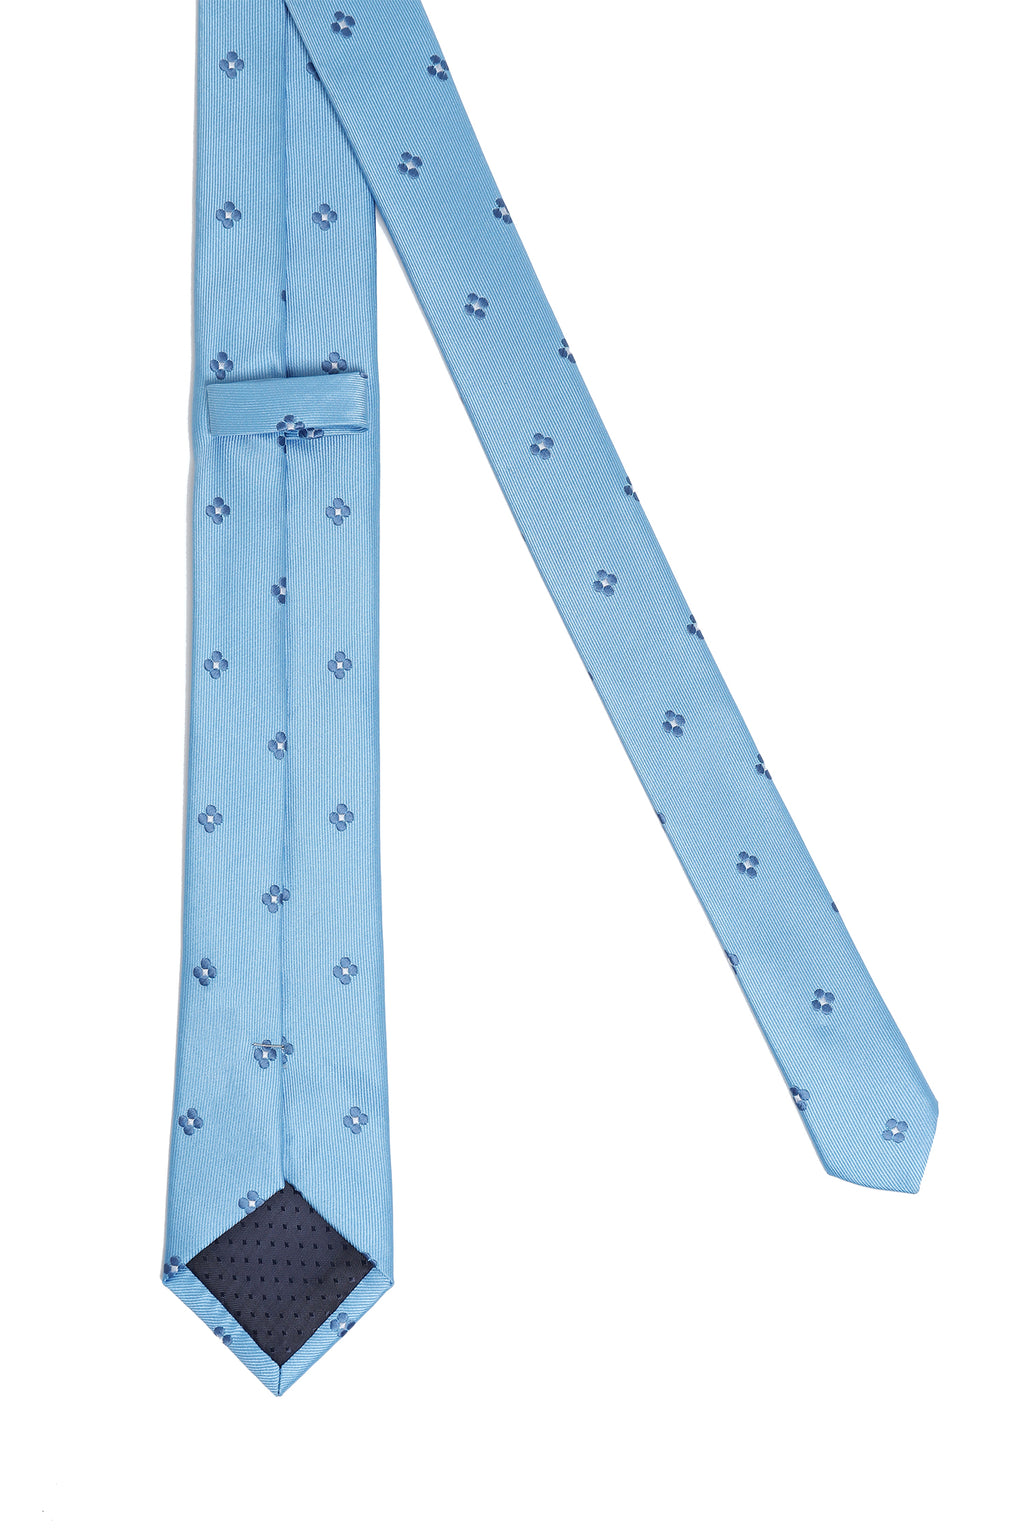 DAISY TIE-LIGHT-BLUE